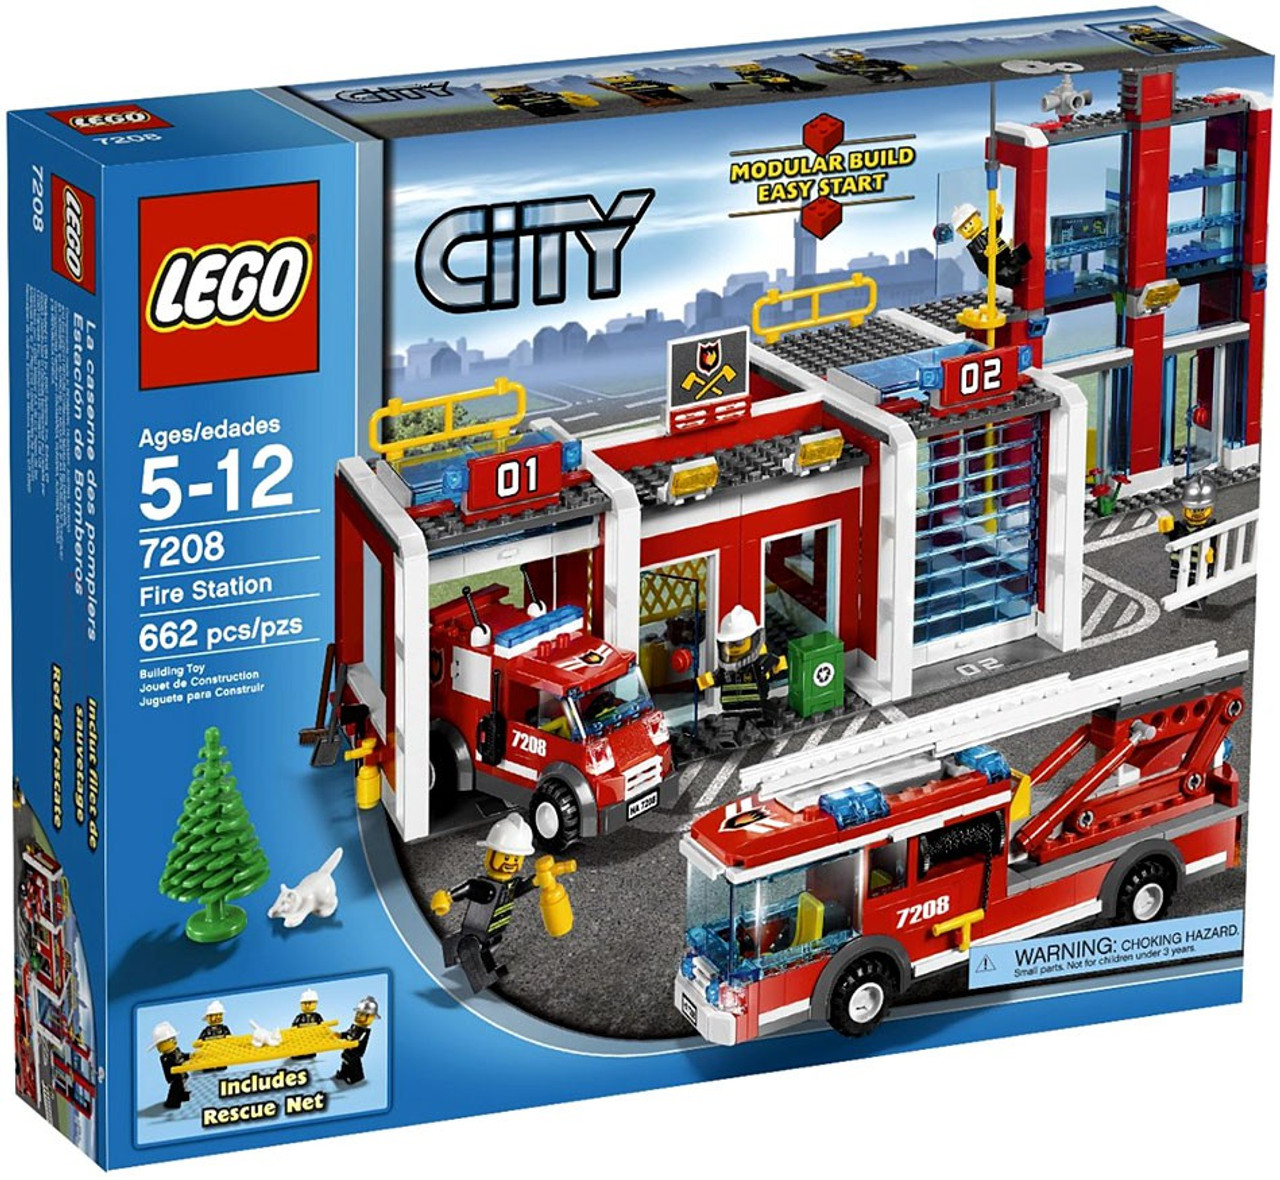 Lego City Fire Station Set 7208 Toywiz